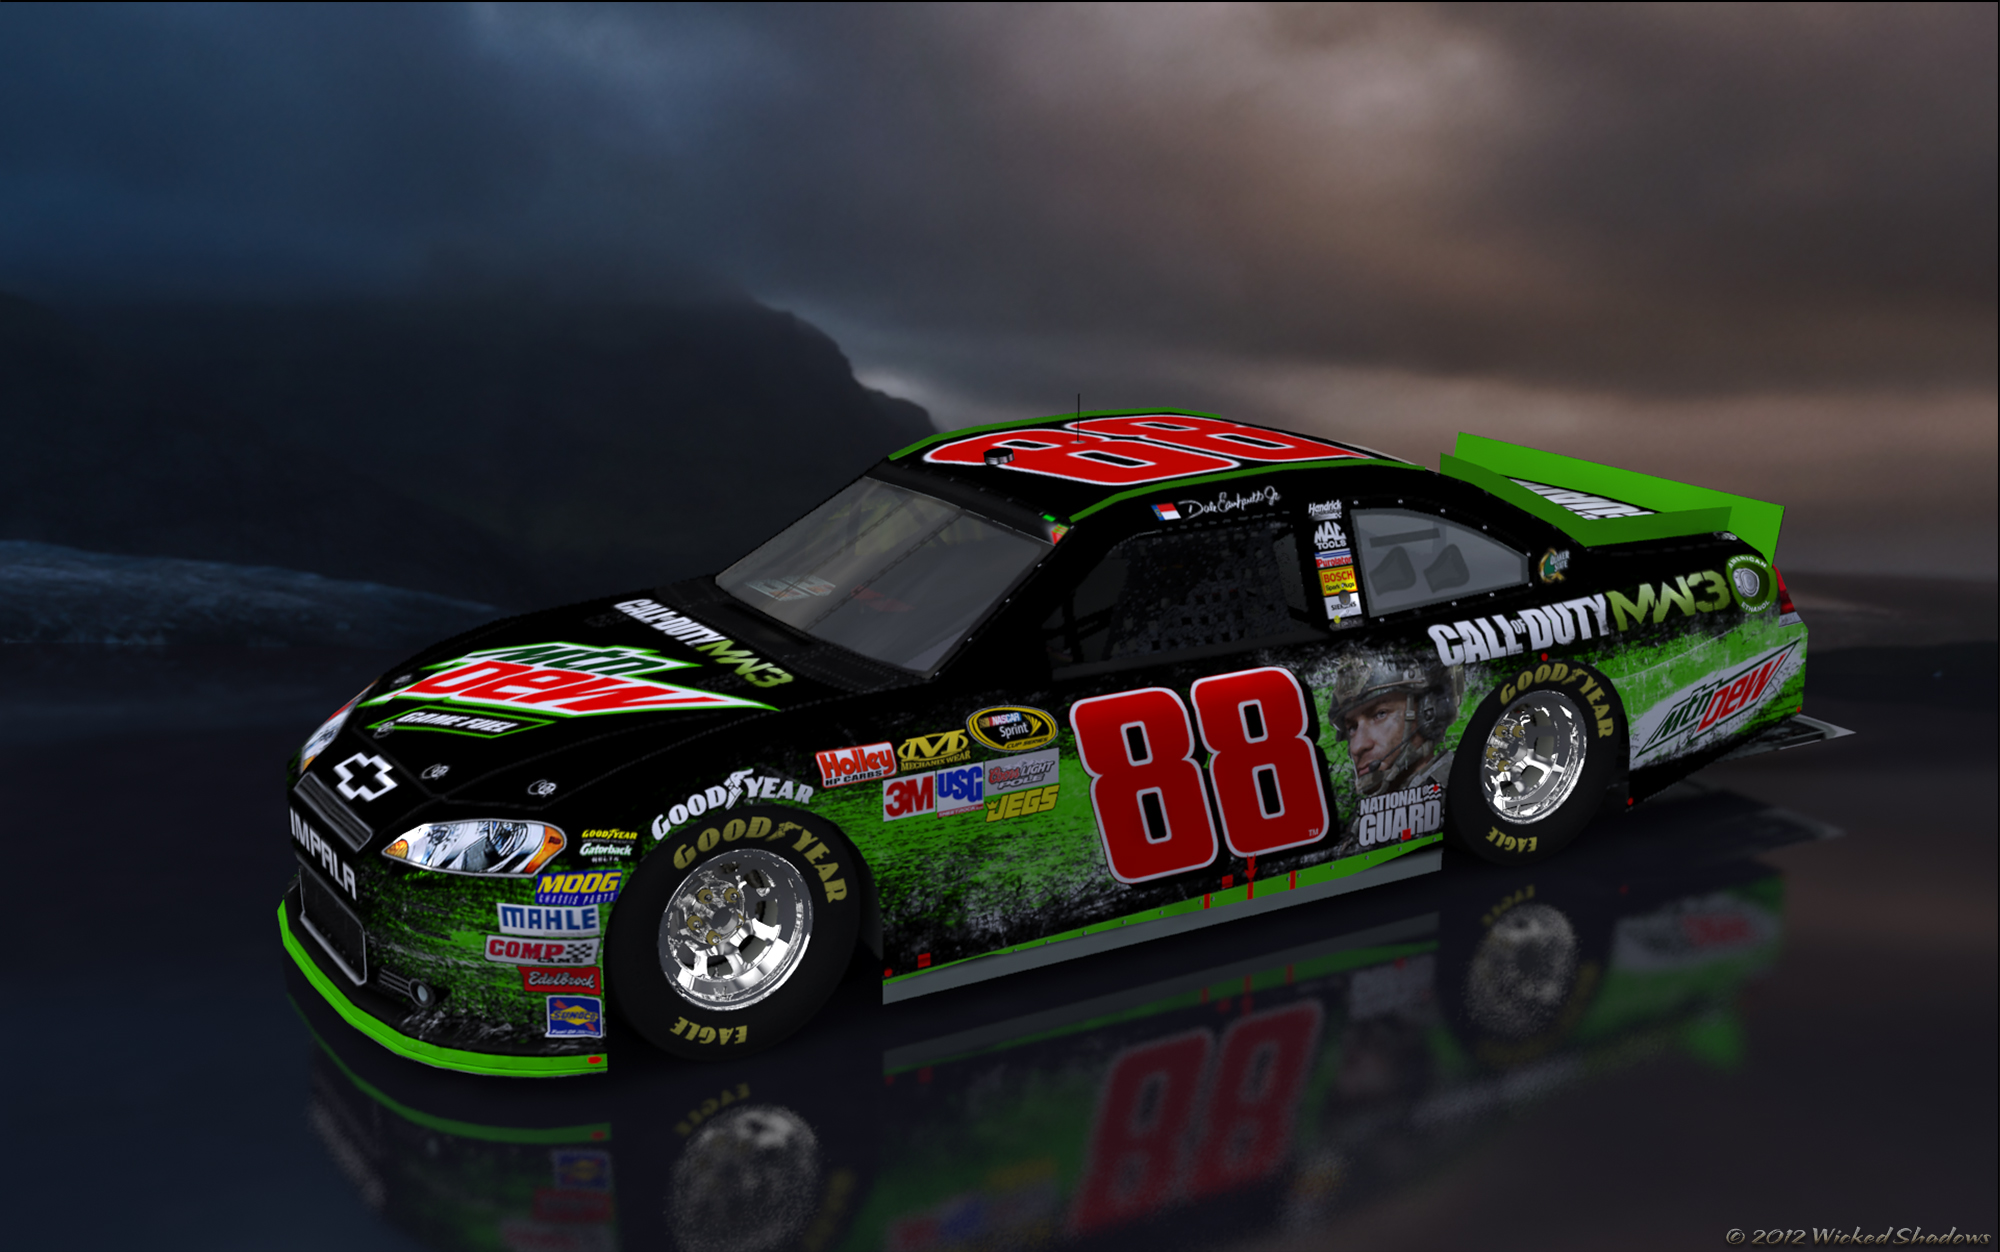 Wallpapers By Wicked Shadows Dale Earnhardt Jr Mountain Dew COD MW3 2000x1252